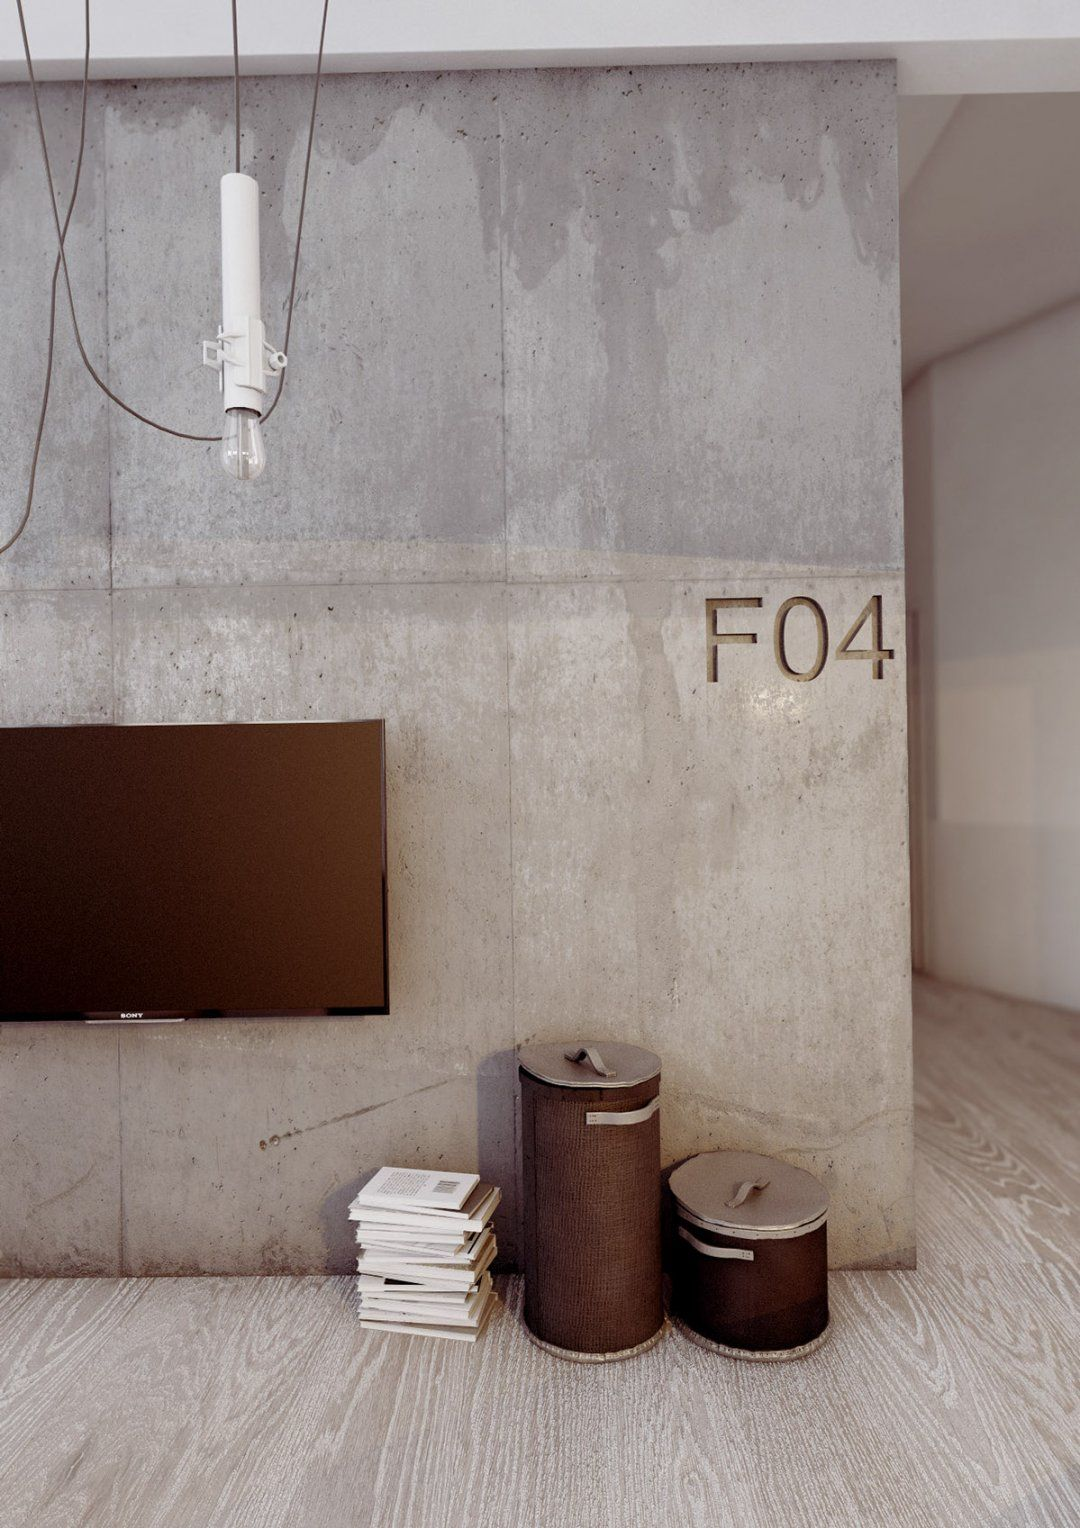 Image Result For How To Paint A Wall To Look Like Concrete Faux Concrete Wall Interior Wall Design Accent Wall